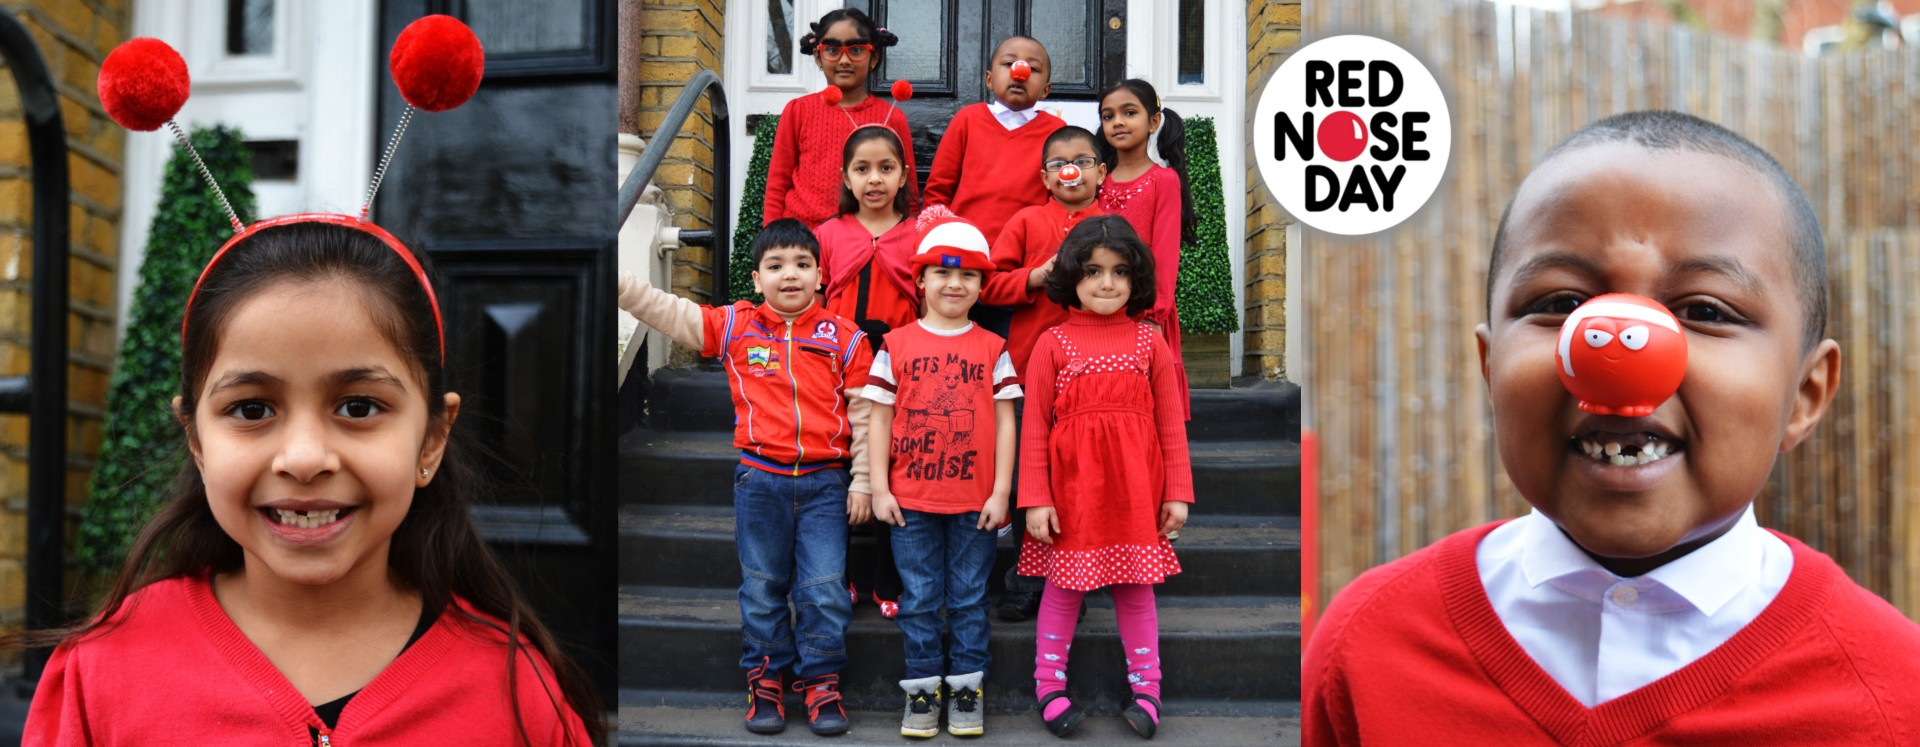 Red Nose Day Banner